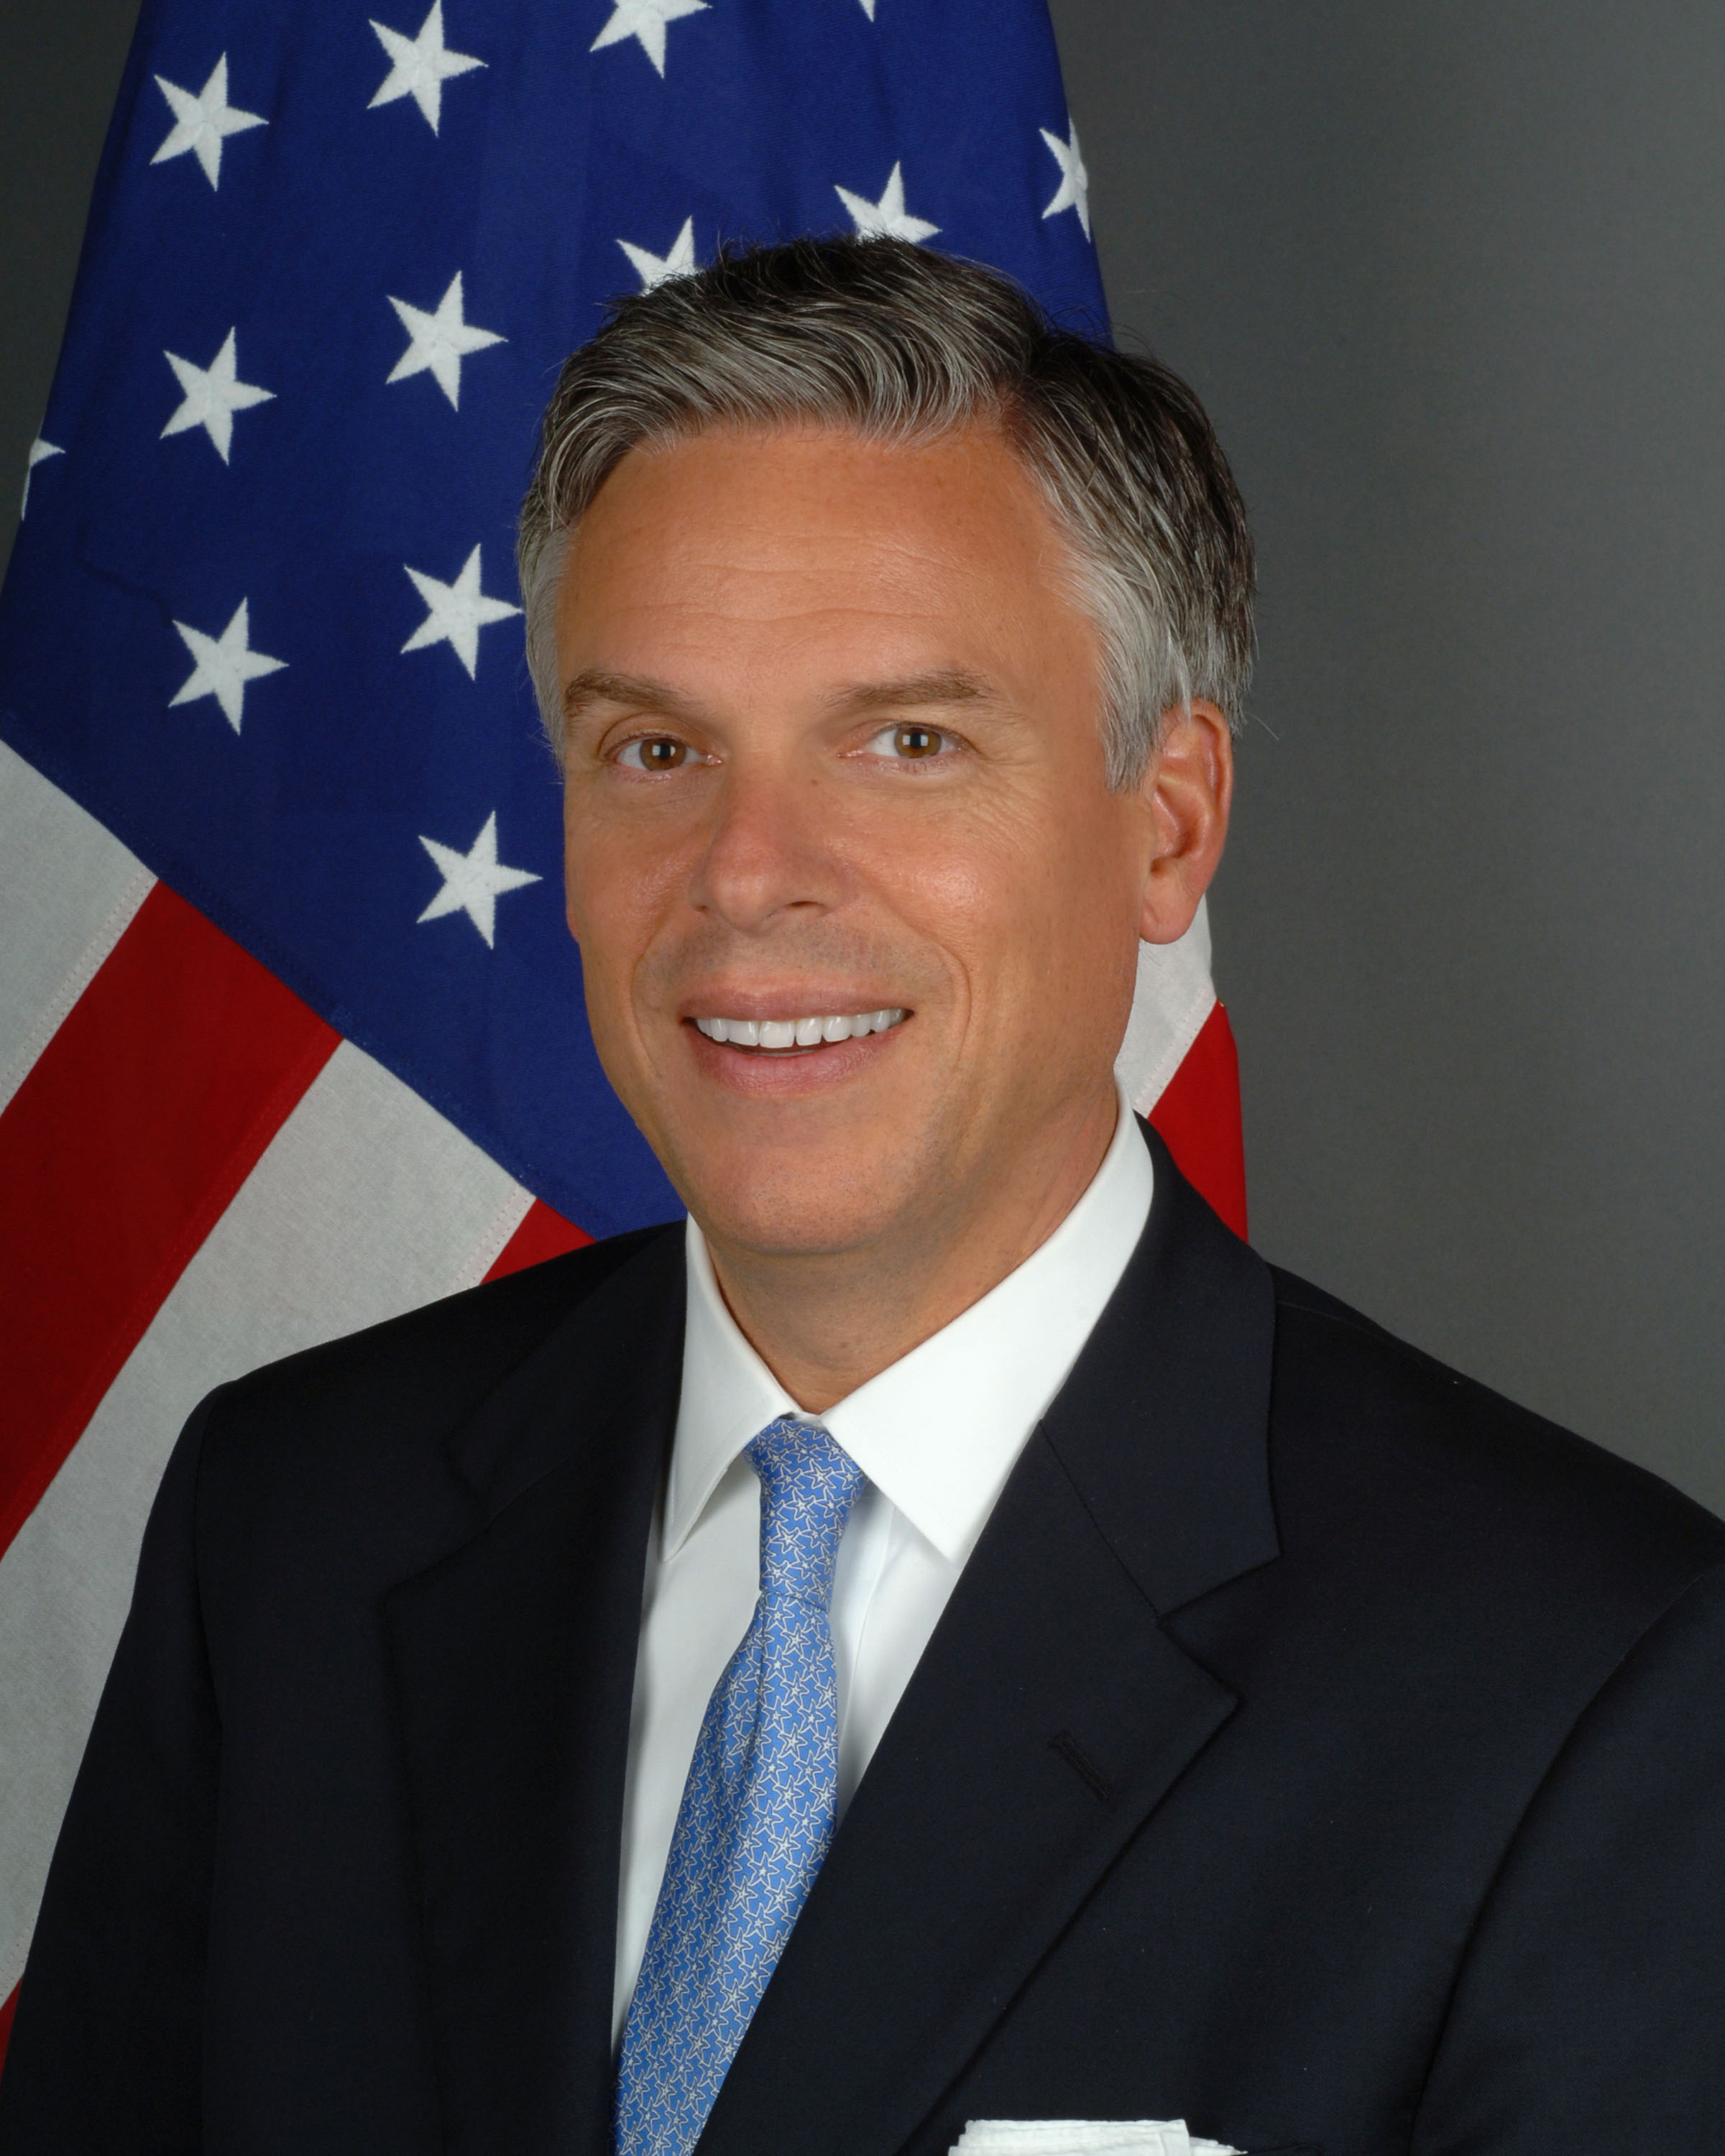 Ambassador Jon Huntsman Former GOP Presidential Candidate Jon Huntsman Jr. for Secretary of State?